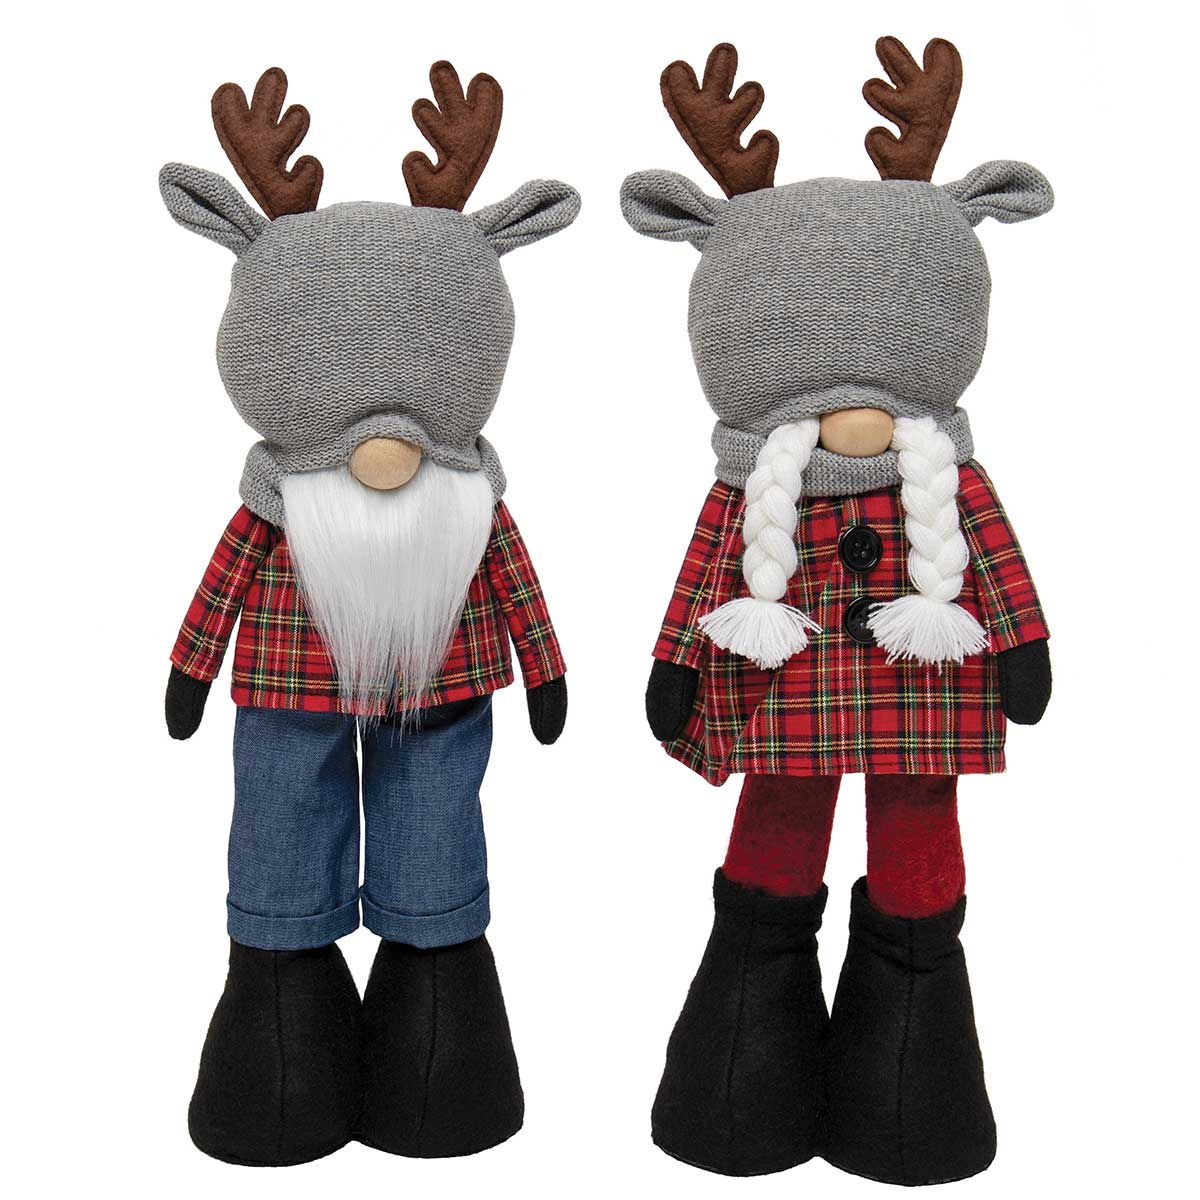 OH DEER STANDING GNOME COUPLE RED PLAID WITH REINDEER